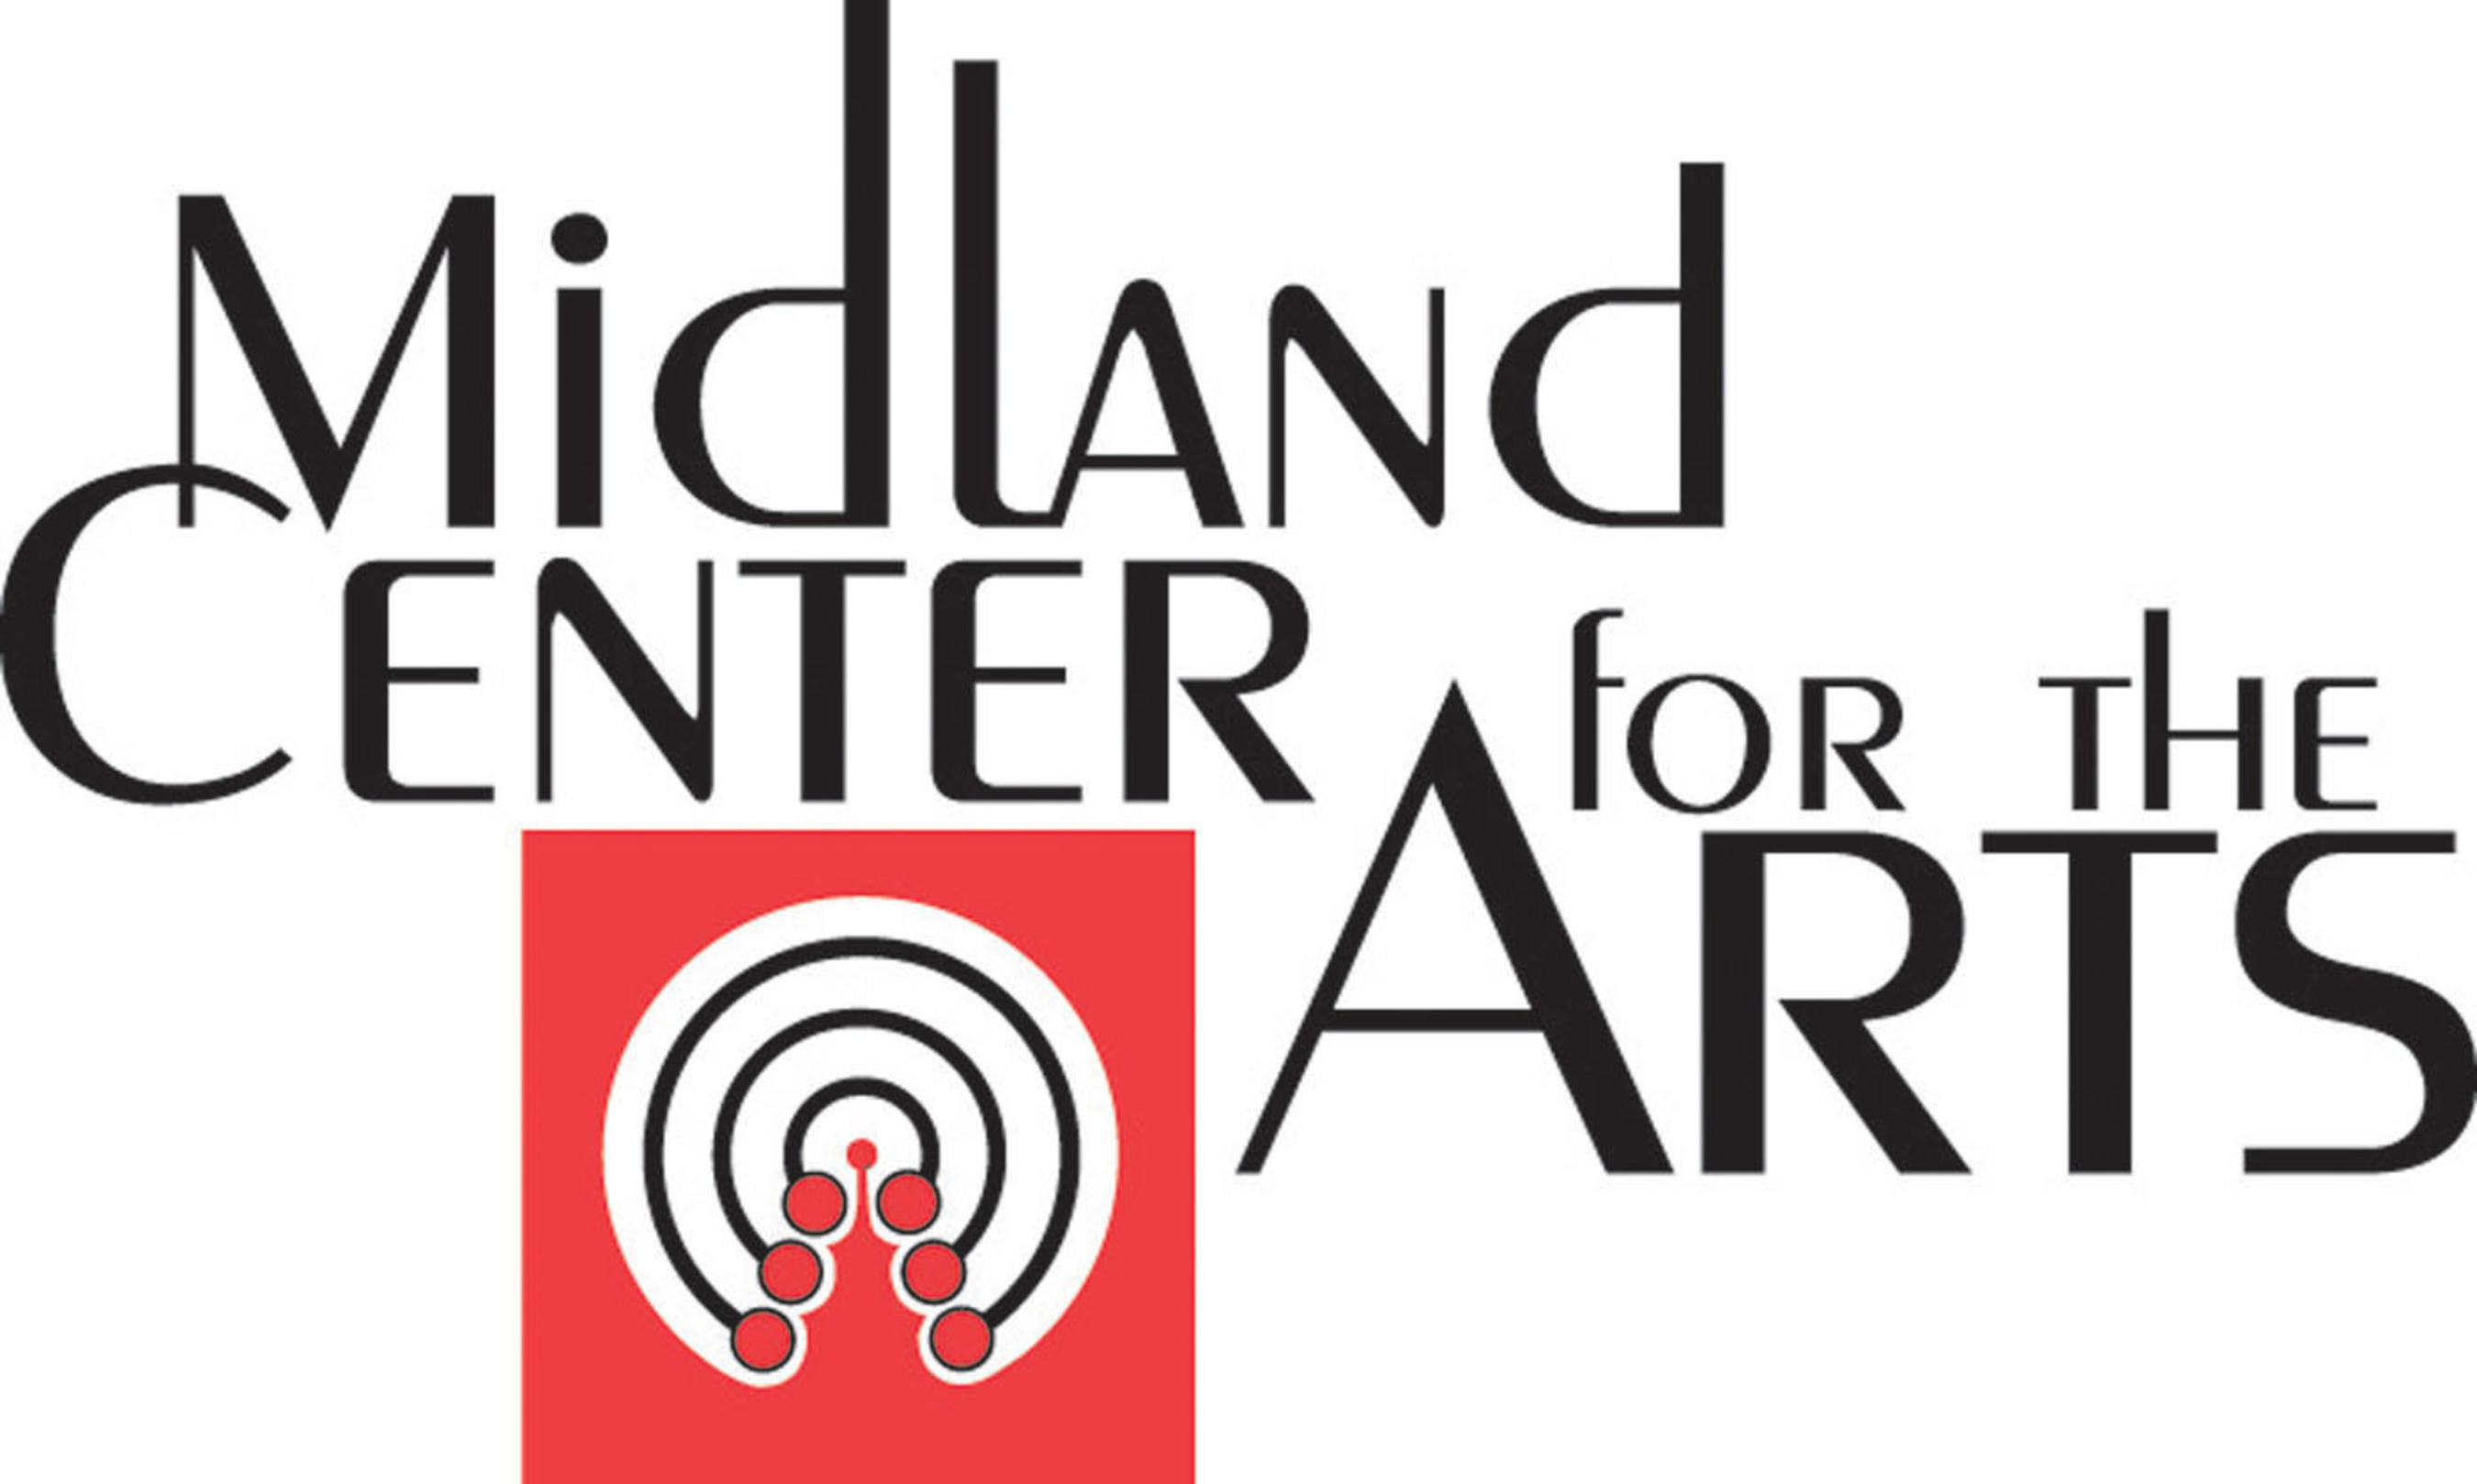 Midland Center for the Arts Tickets to over 30 performing arts events now on sale